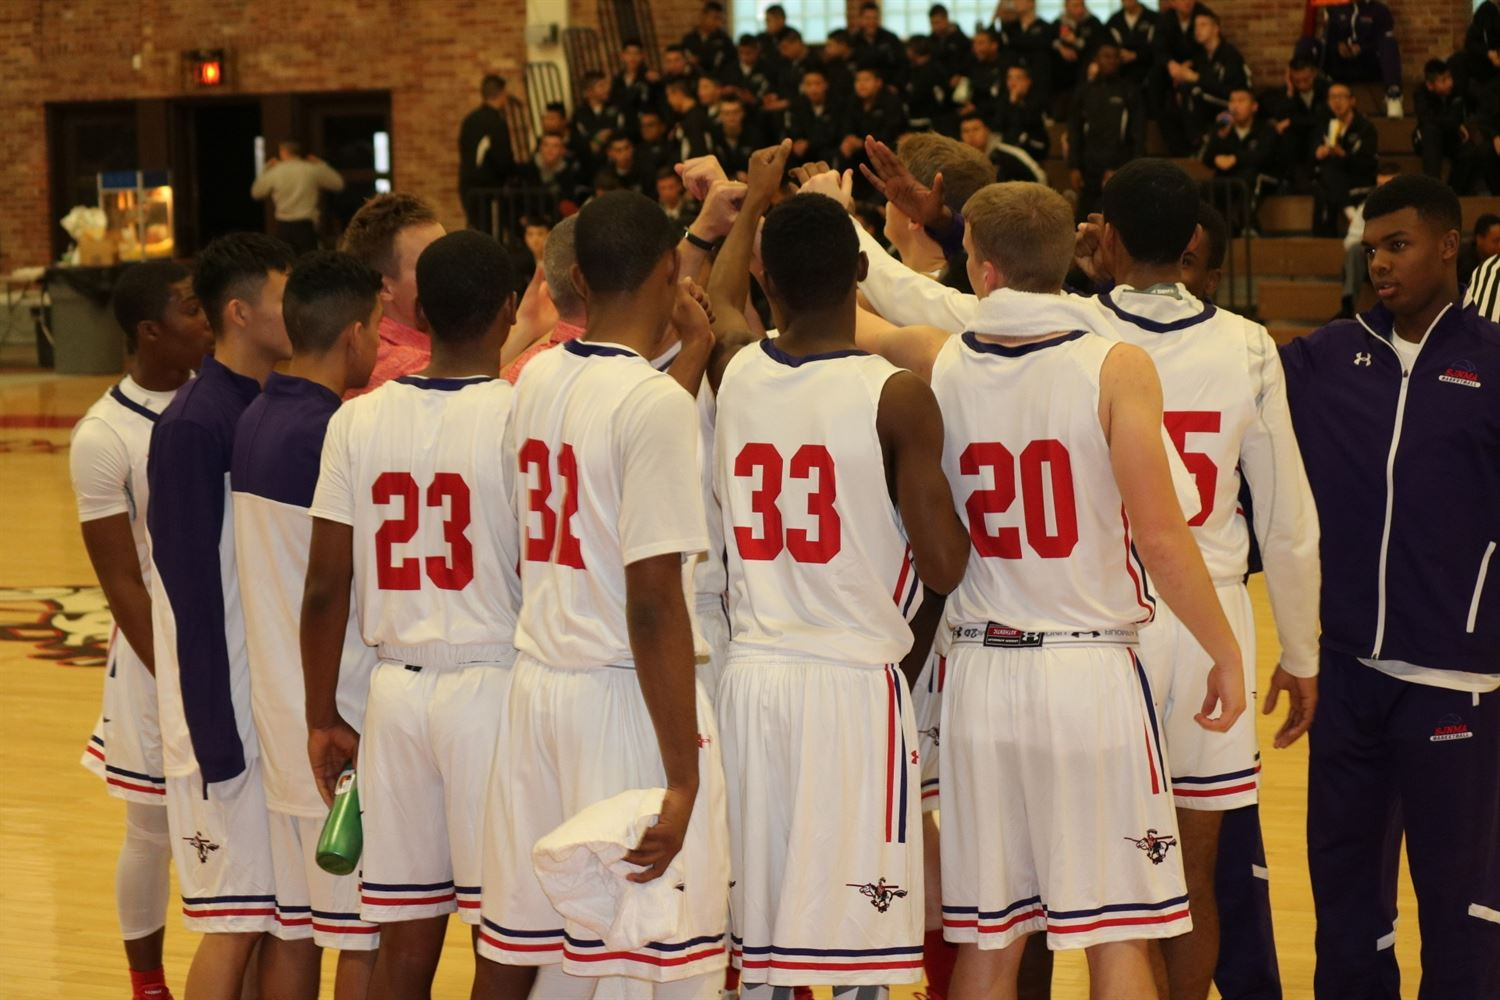 St. John's Northwestern Military High School - Boys Varsity Basketball